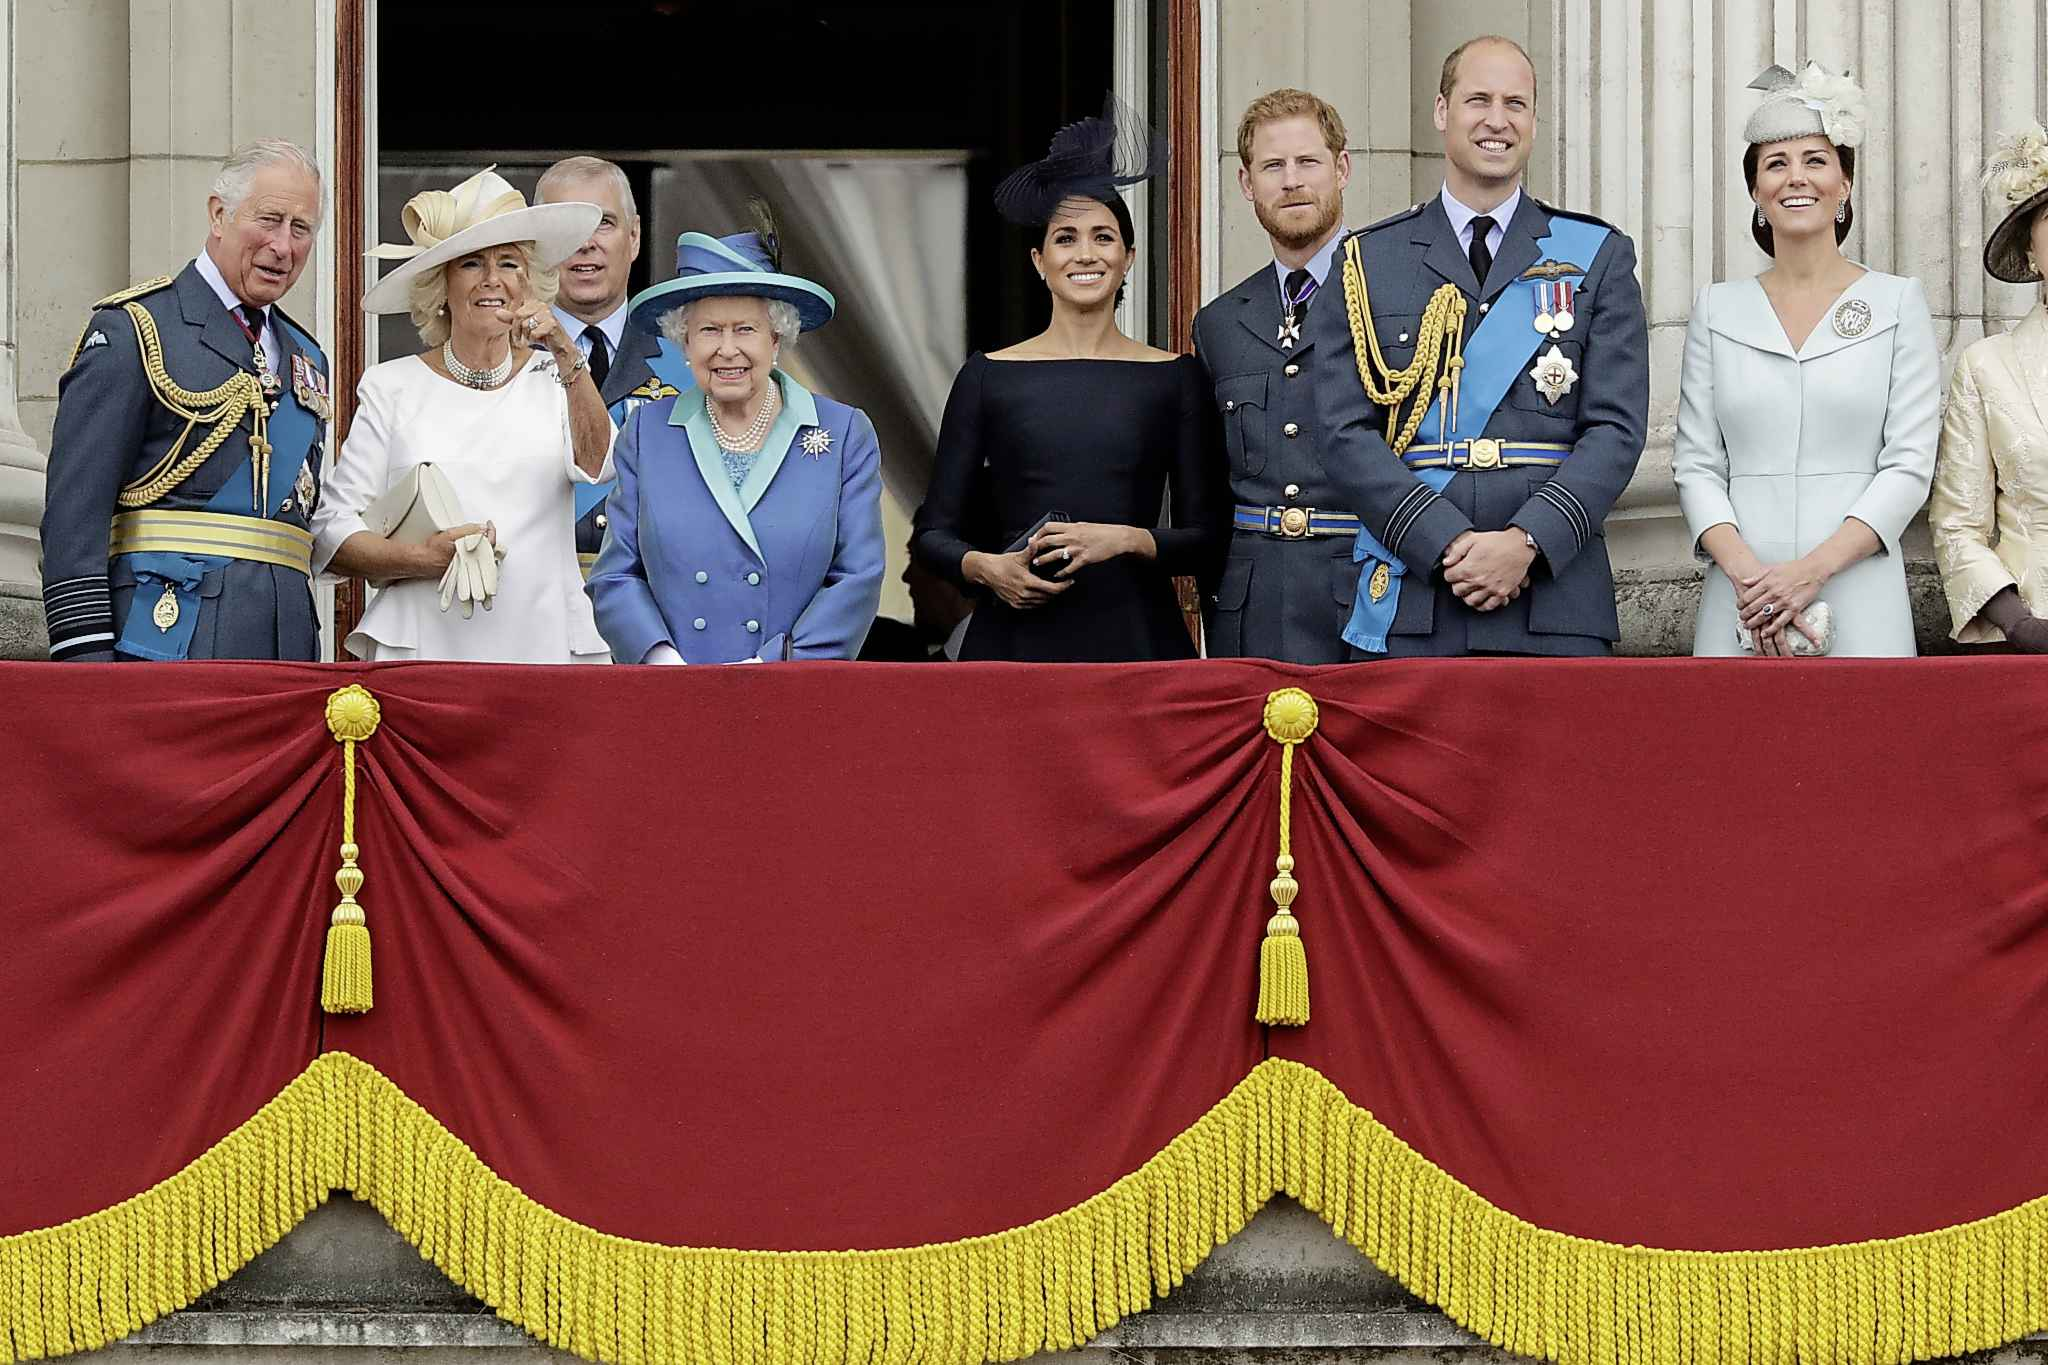 FILE - In this Tuesday, July 10, 2018 file photo, members of the royal family gather on the balcony of Buckingham Palace, with (from left) Prince Charles, Camilla the Duchess of Cornwall, Prince Andrew, Queen Elizabeth II, Meghan the Duchess of Sussex, Prince Harry, Prince William and Kate the Duchess of Cambridge.  Queen Elizabeth II says she has agreed to grant Prince Harry and Meghan their wish for a more independent life that will see them move part-time to Canada. (AP Photo/Matt Dunham, File)